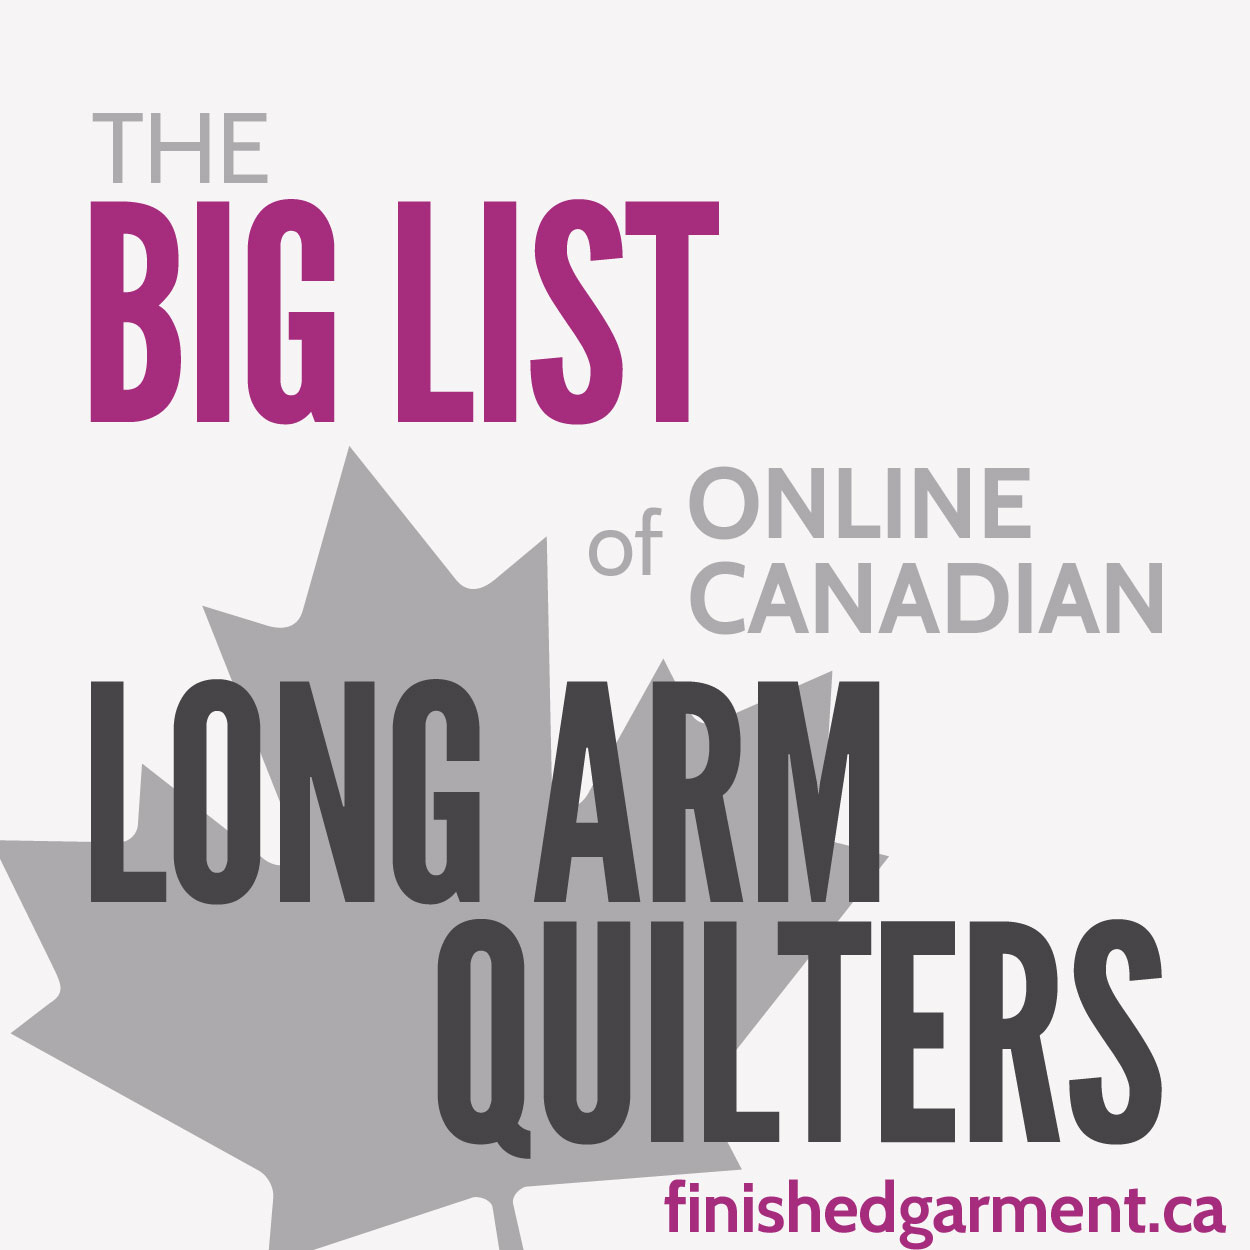 The Big List of Online Canadian Longarm Quilters